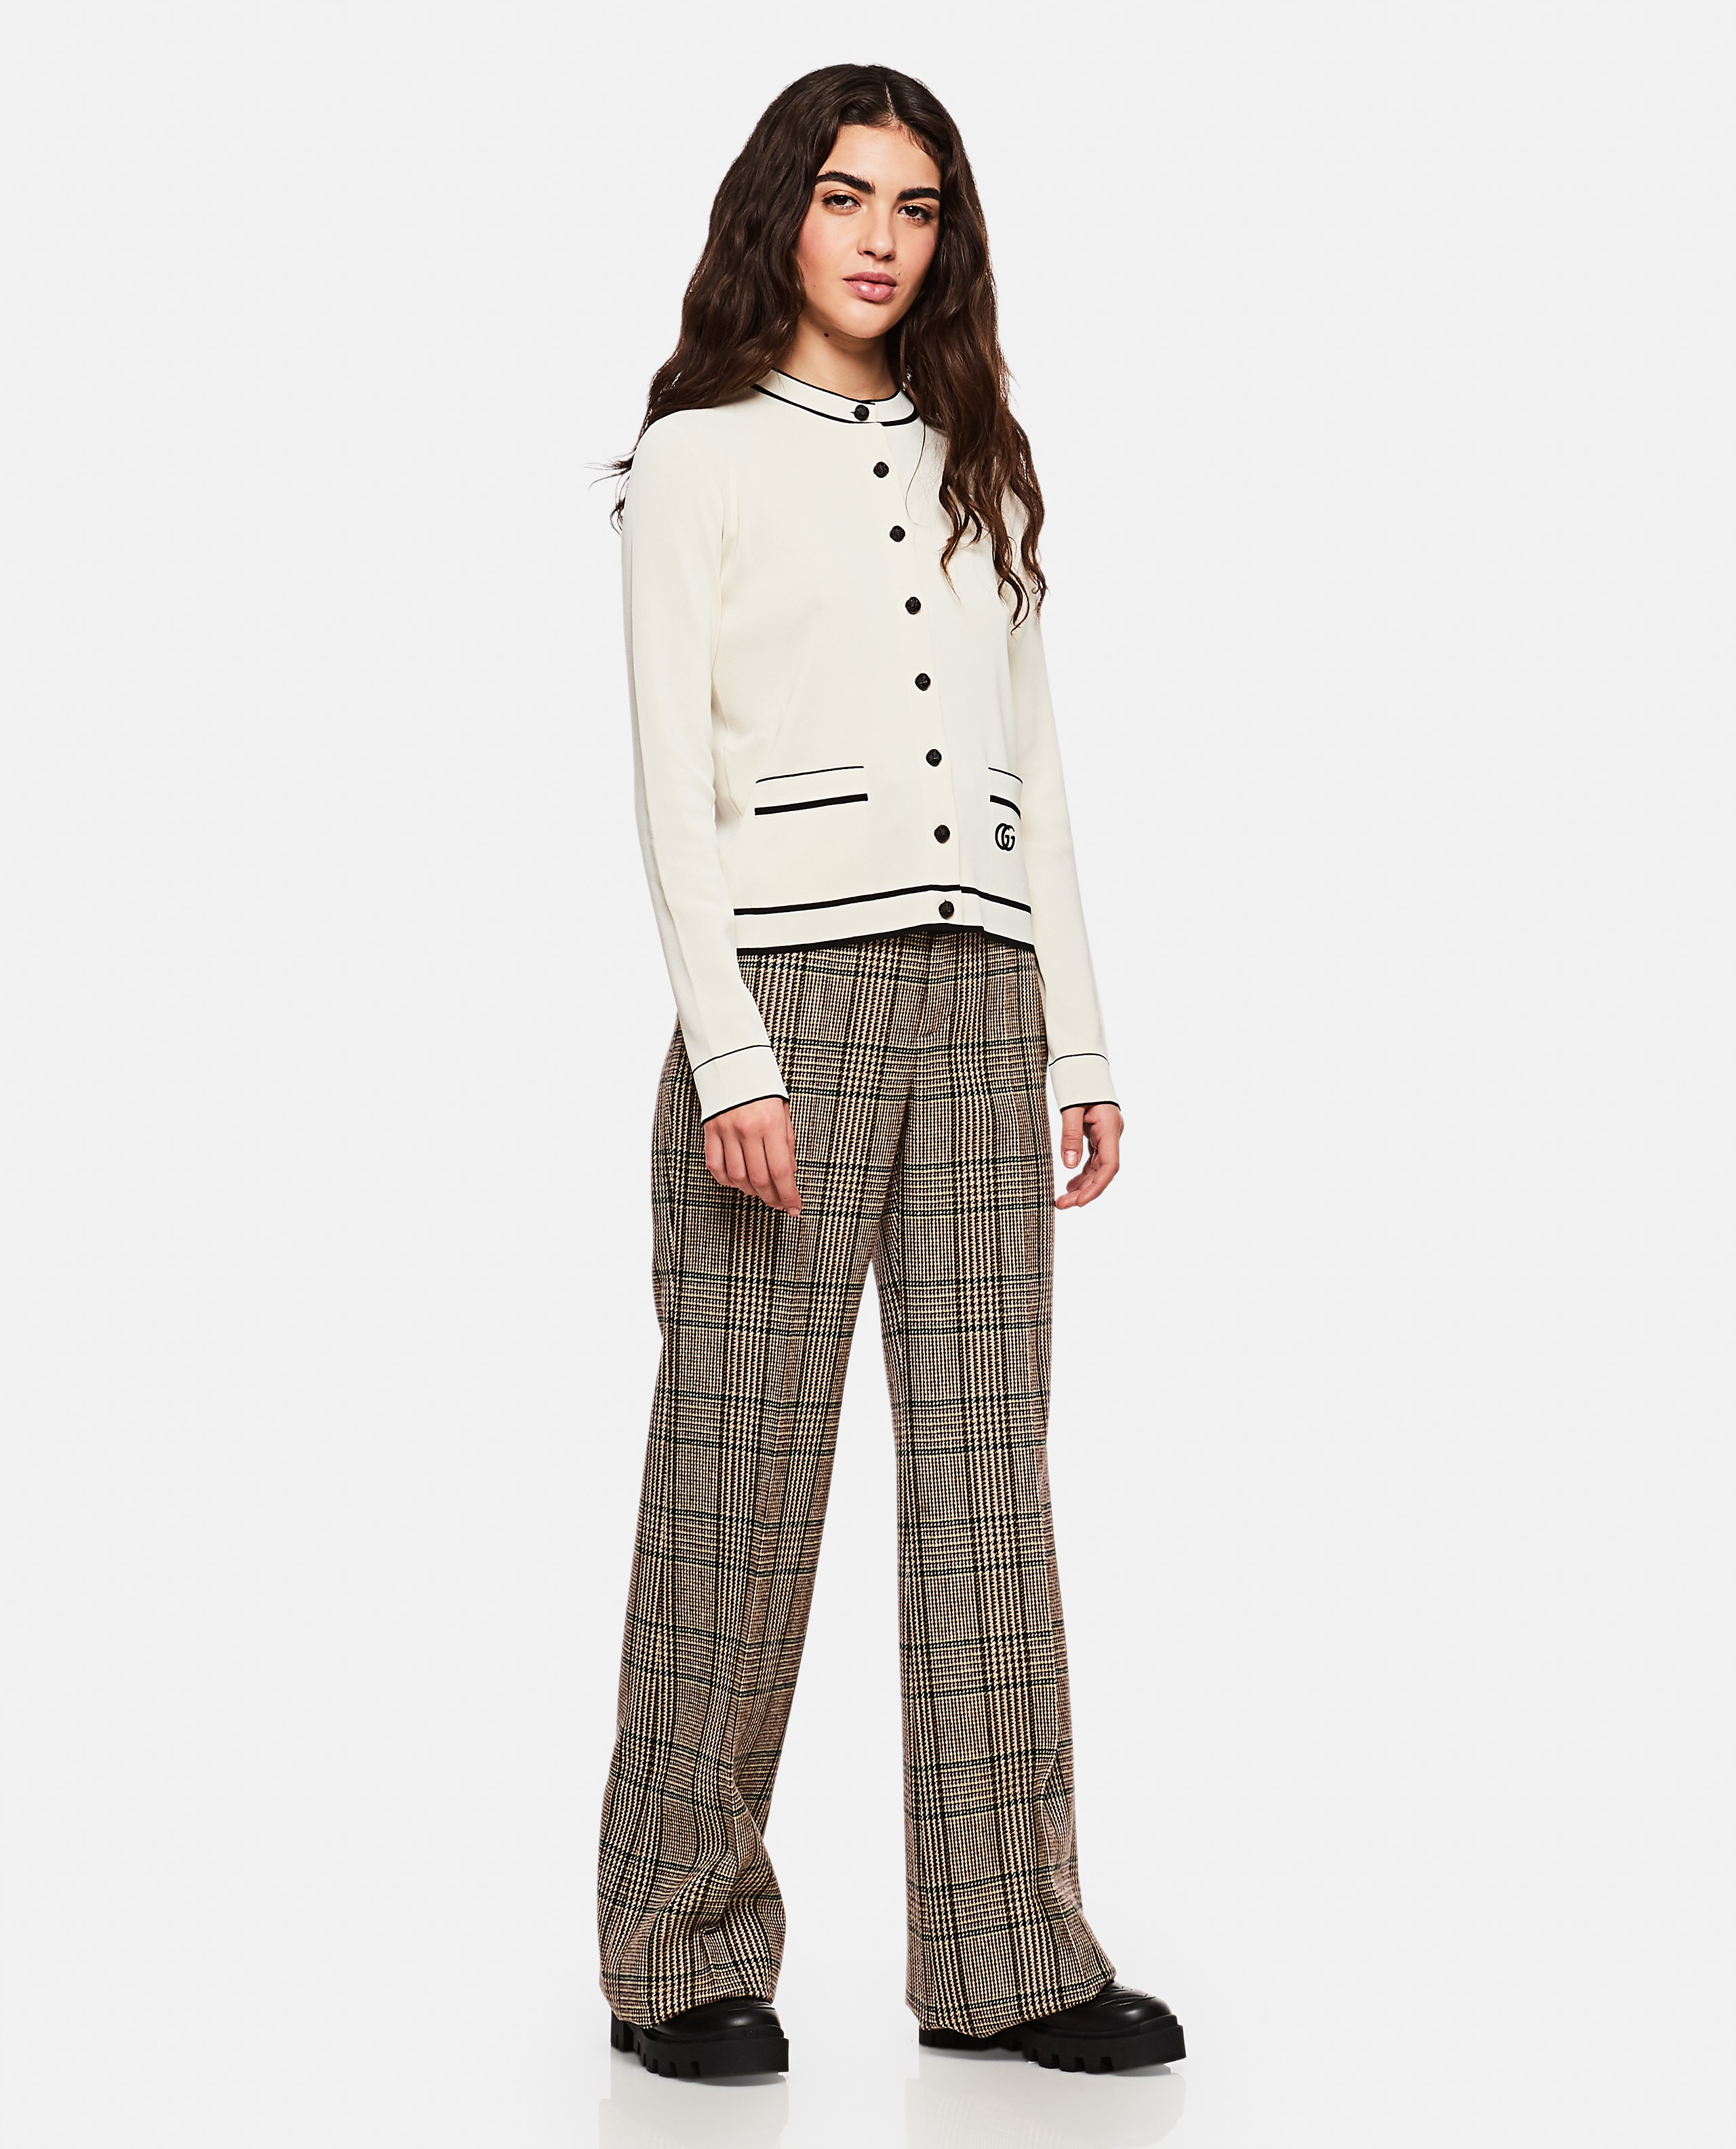 Prince of Wales pattern wool trousers Women Gucci 000274000040356 2